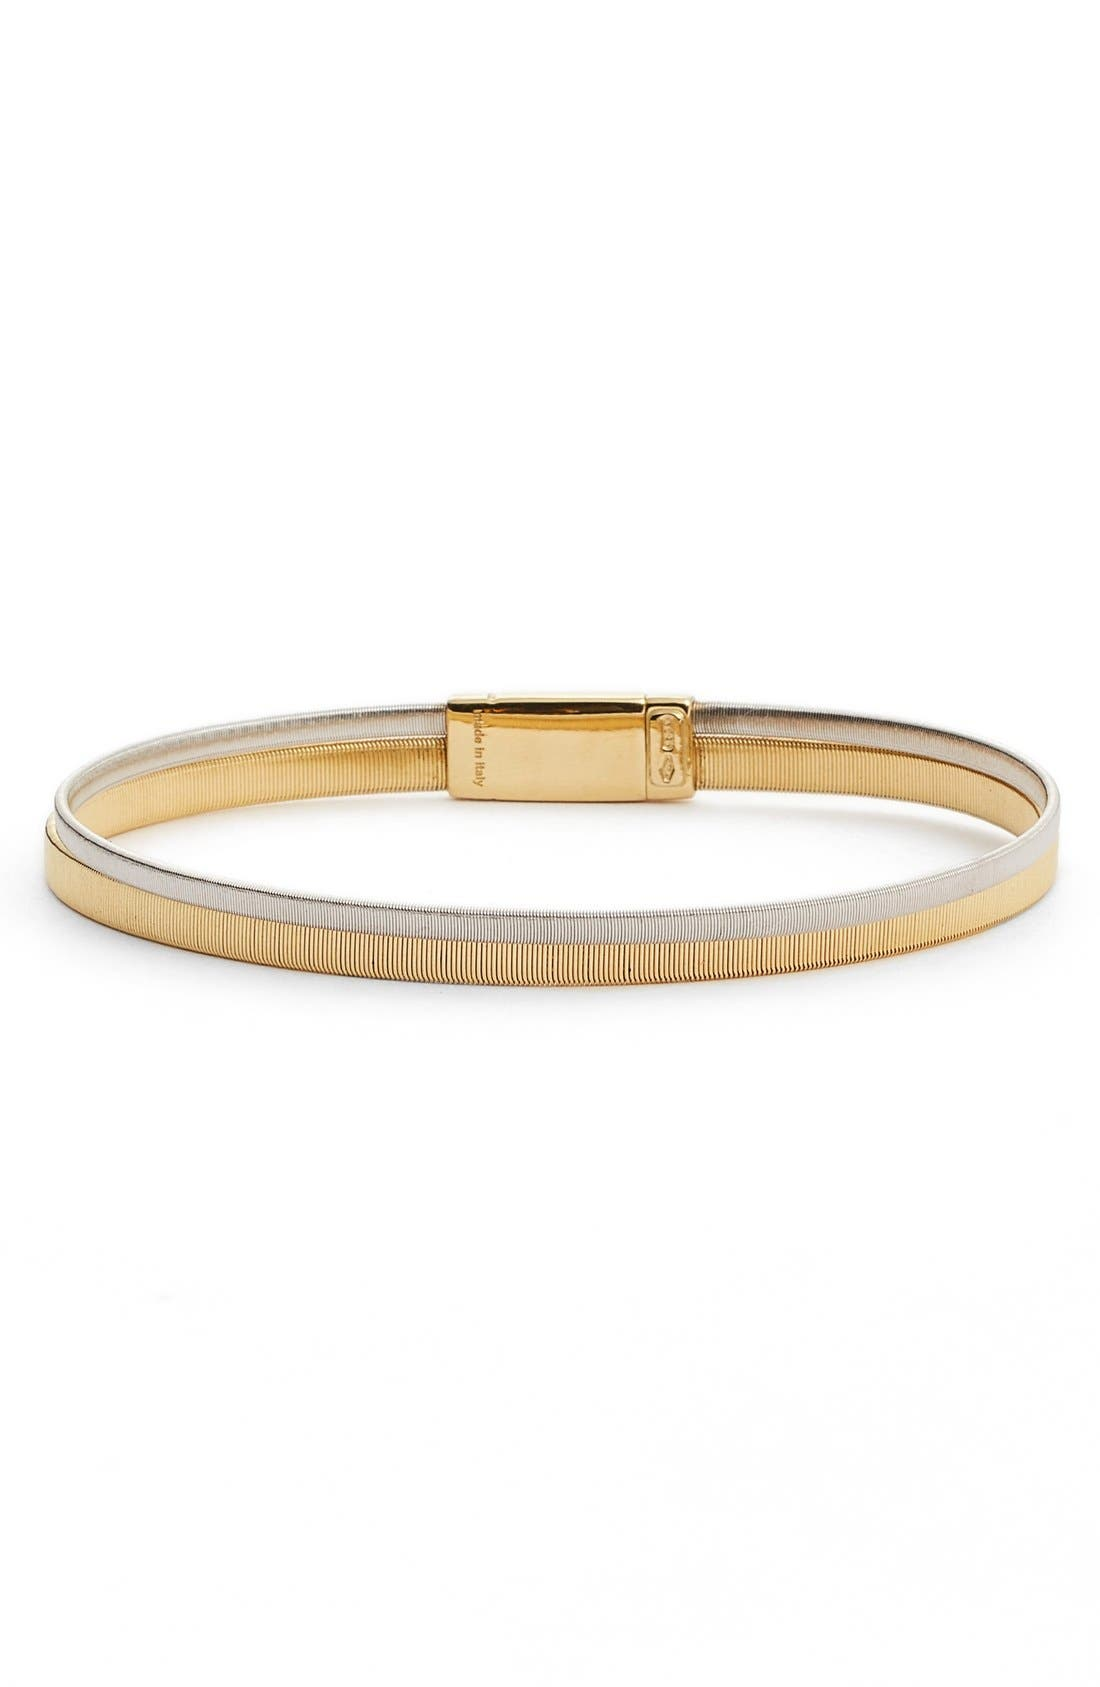 Masai Stack Bracelet,                         Main,                         color, YELLOW GOLD